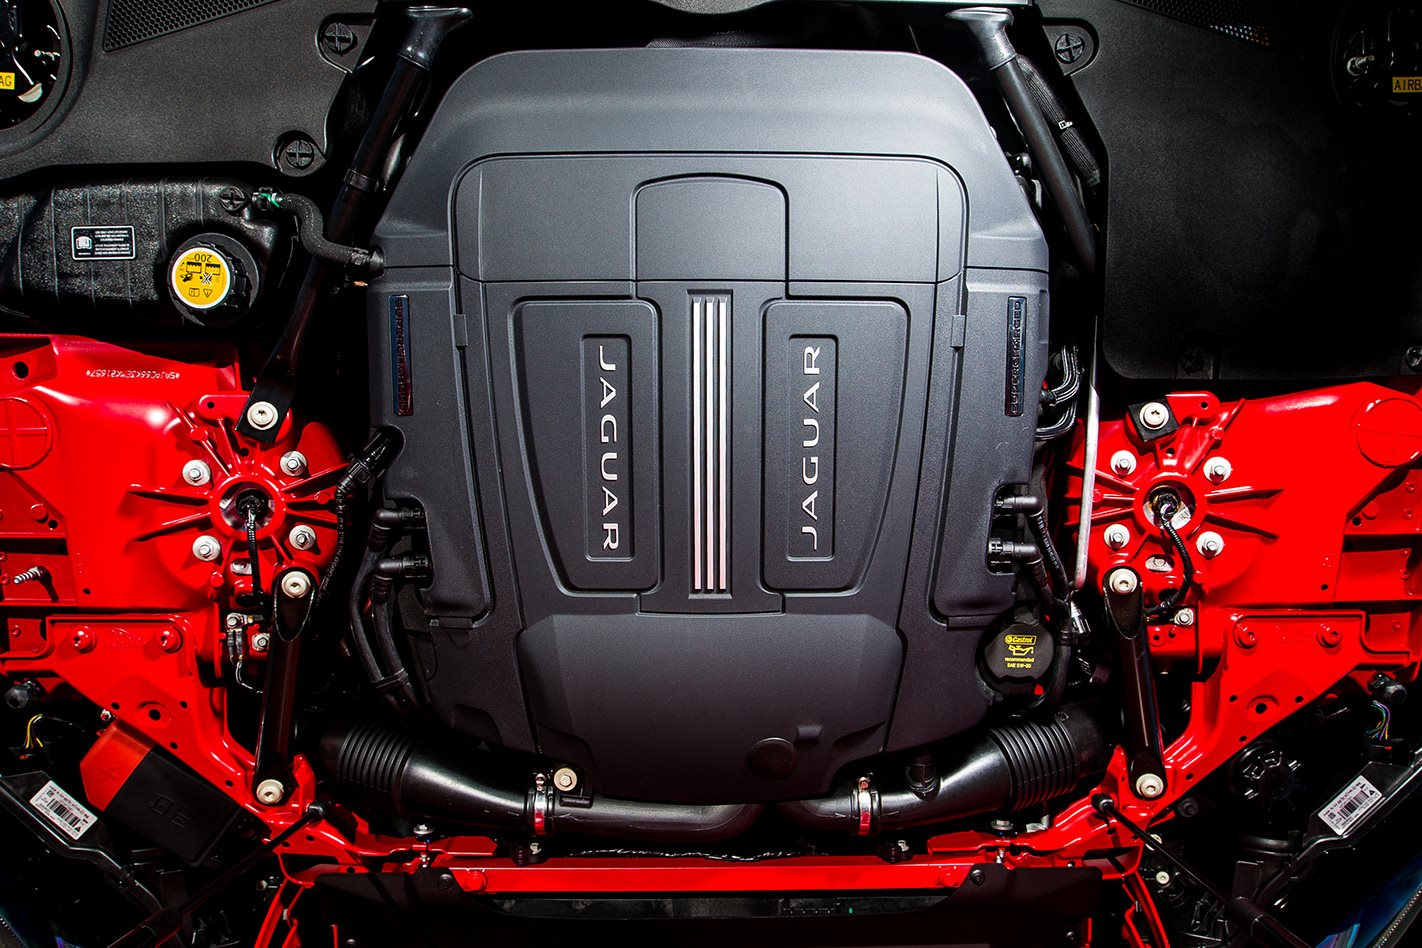 Jaguar-F-Type-V8-RWD-engine.jpg